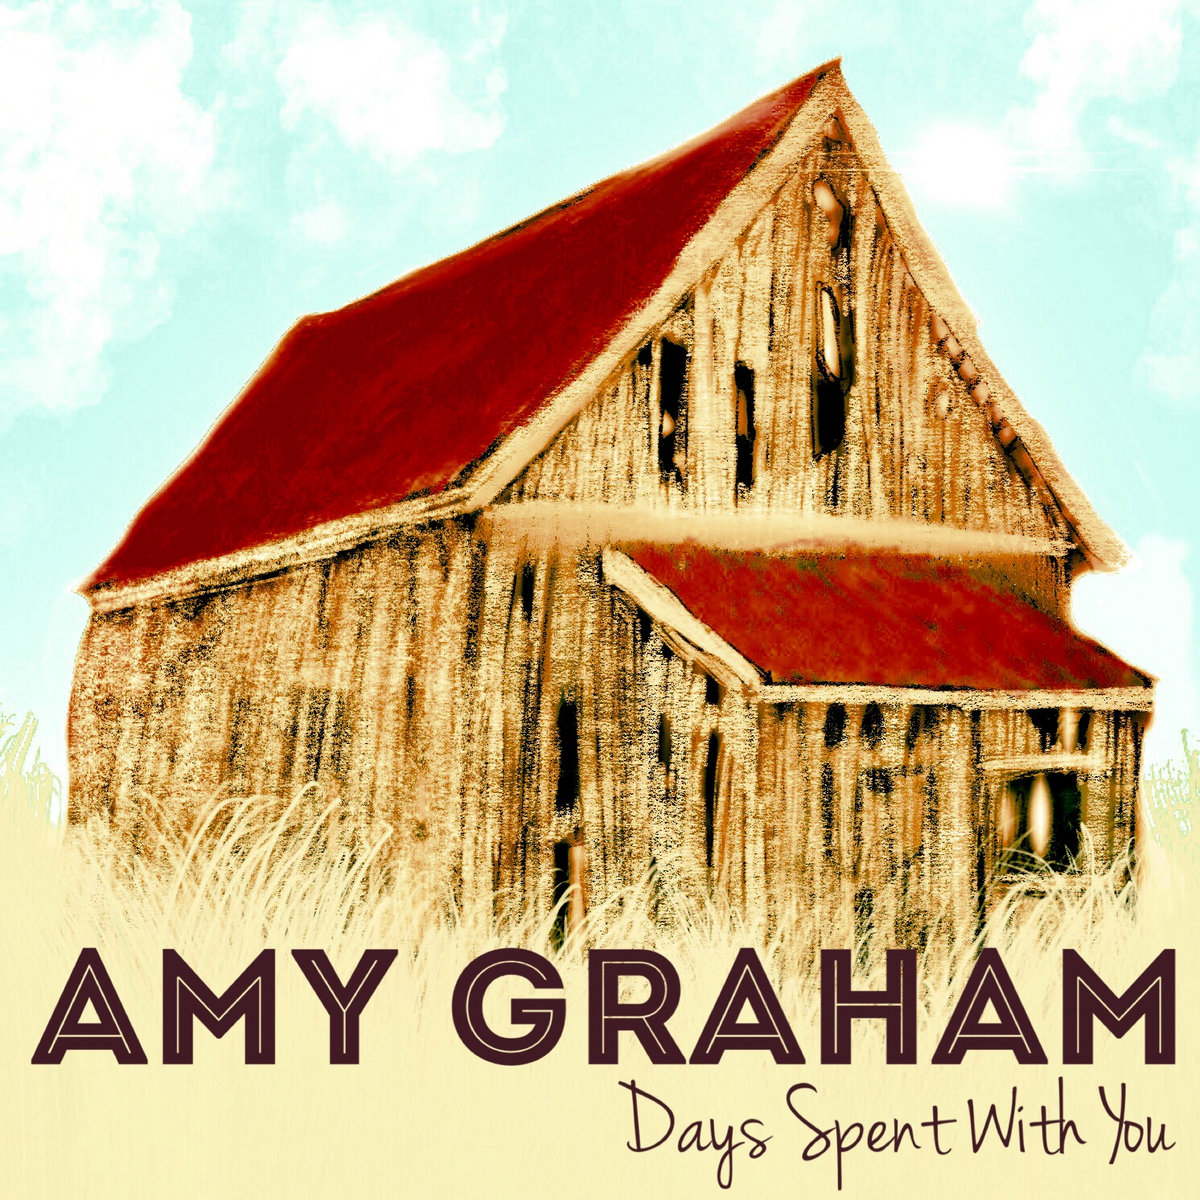 Days Spent With You by Amy Graham